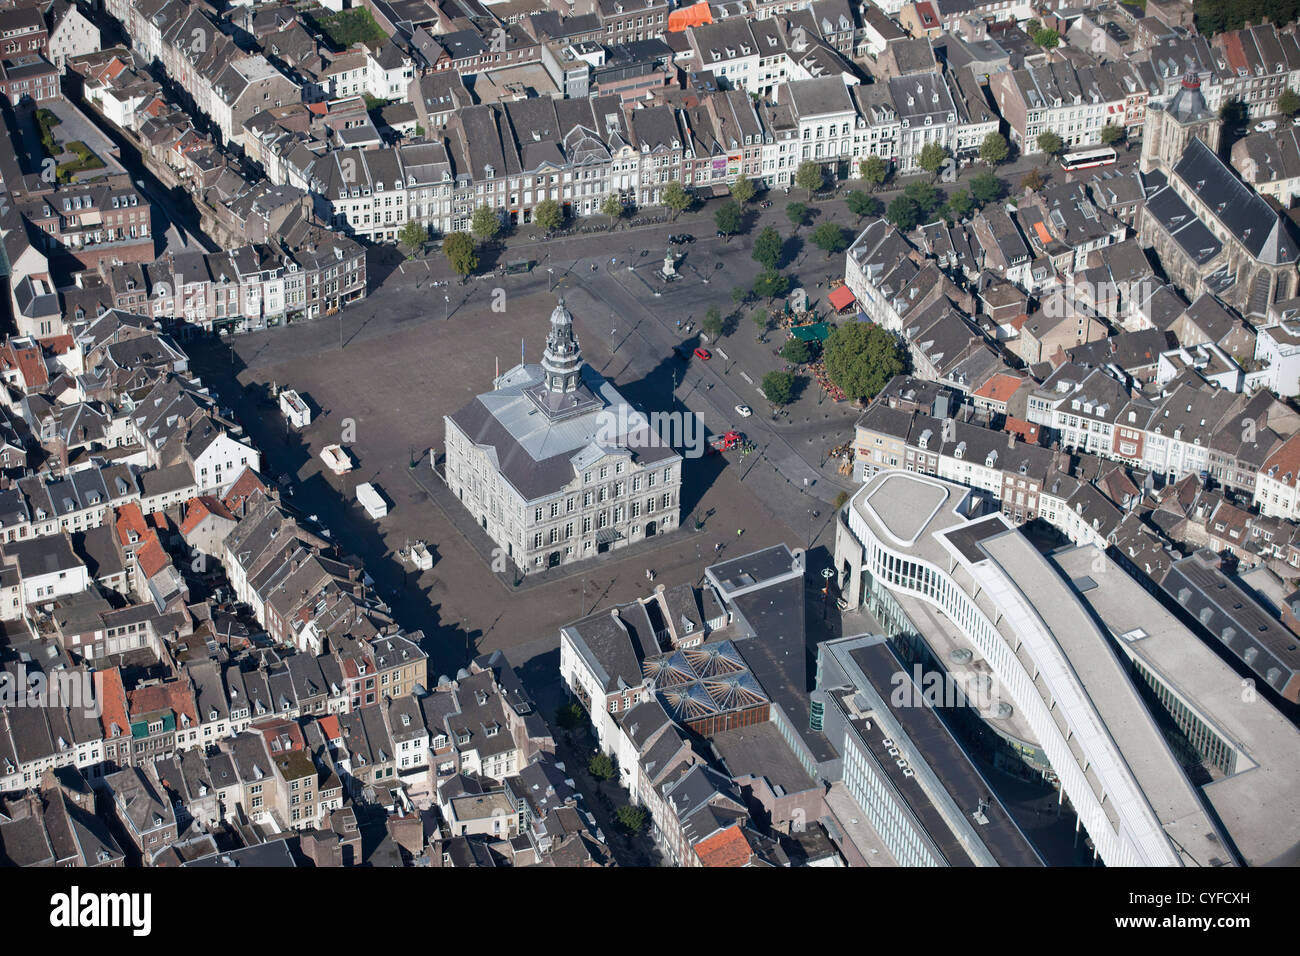 The Netherlands, Maastricht, Townhall. Aerial. - Stock Image